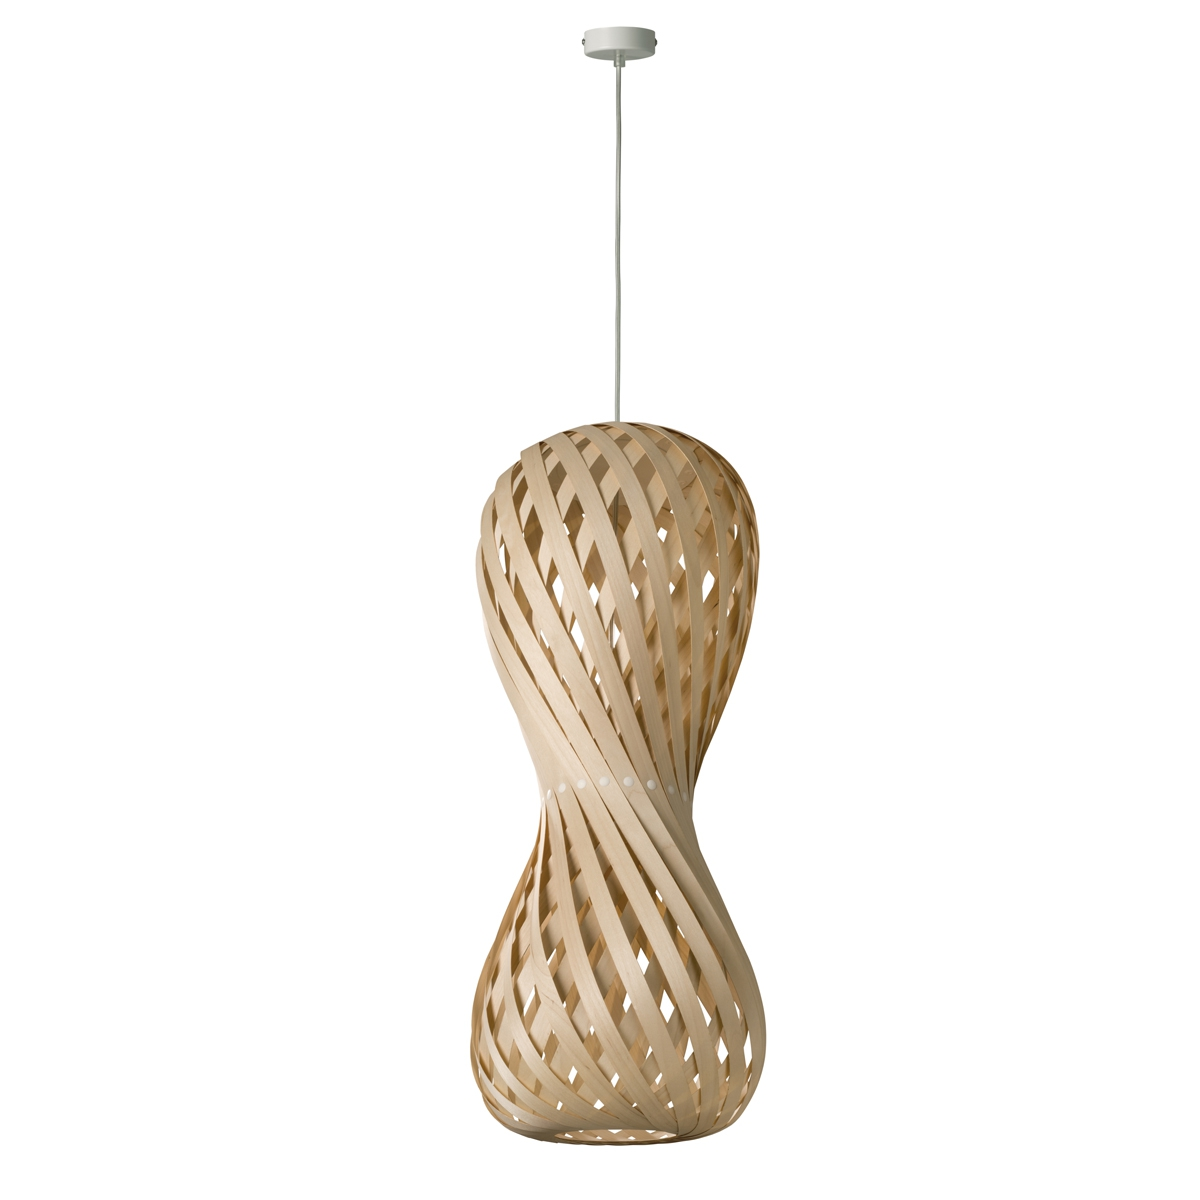 Suspension Contemporaine Suspension Contemporaine En Bois